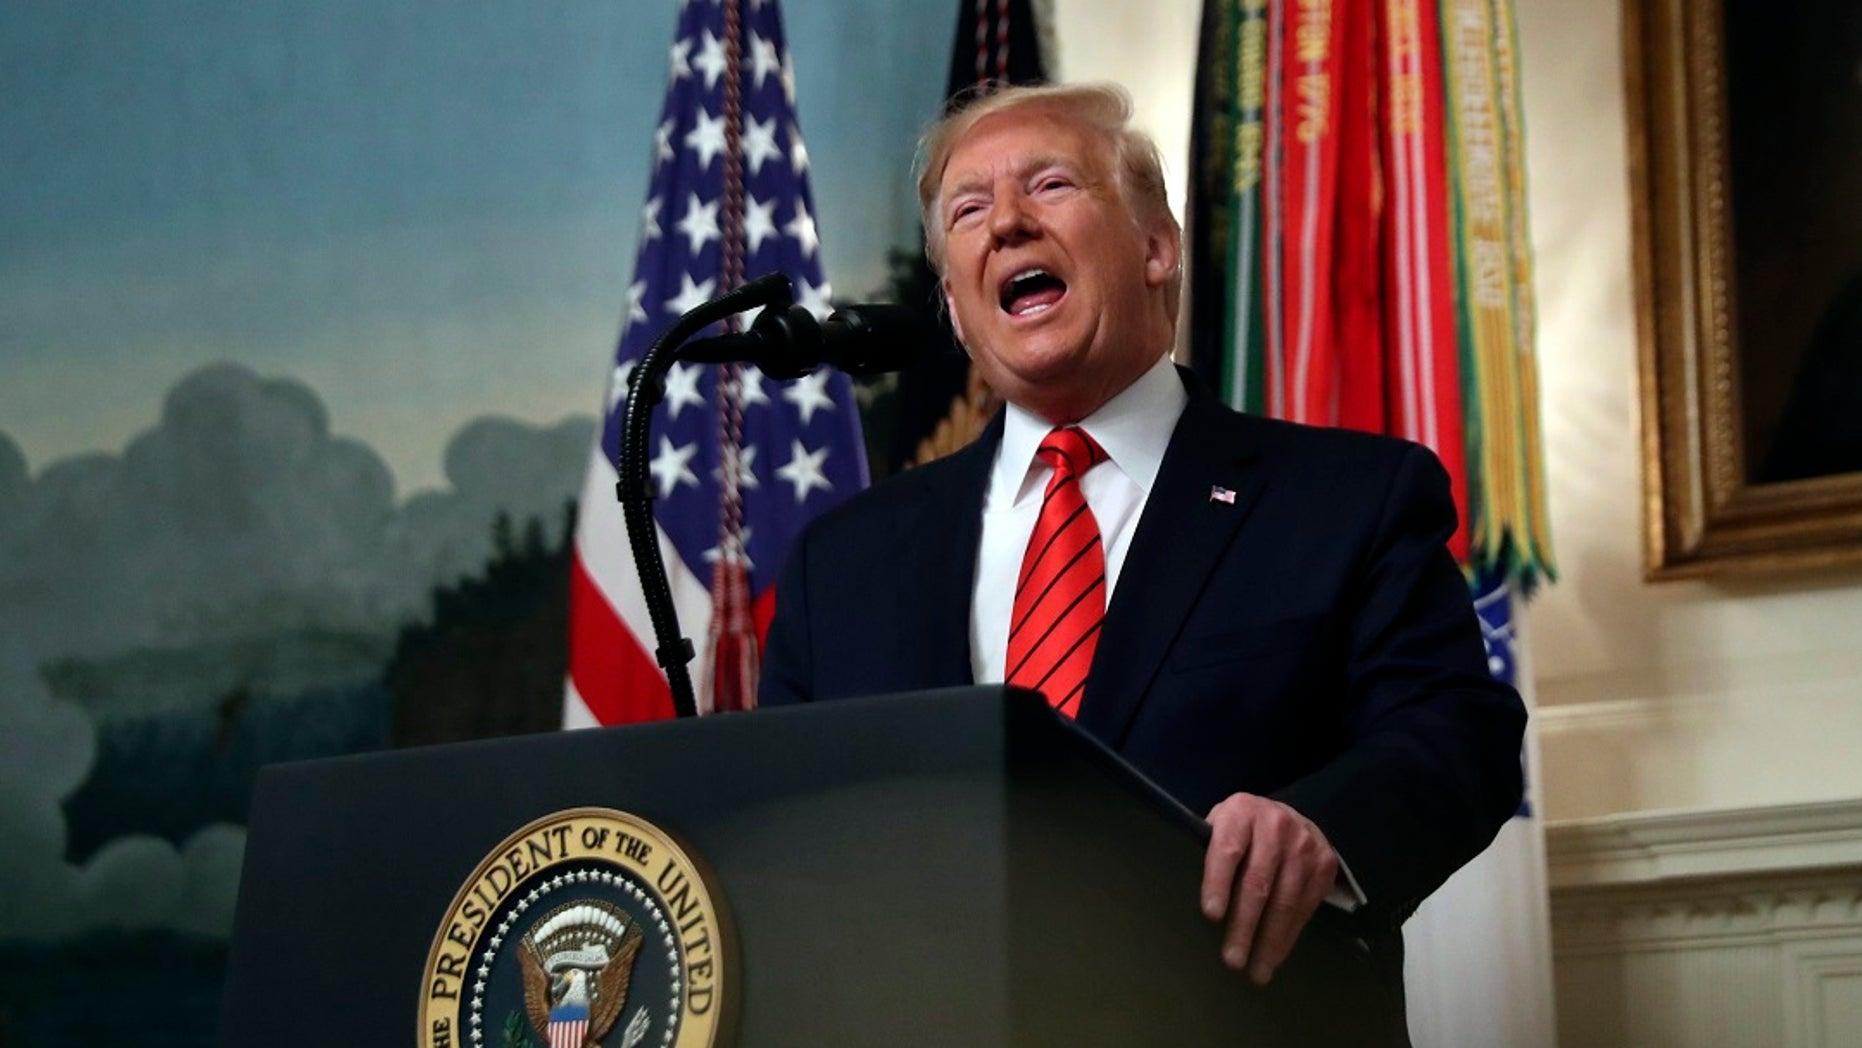 President Donald Trump told the Washington Examiner he may read aloud the transcript from his phone call with Ukrainian President Volodymyr Zelensky on Television, similar to a fireside chat. (AP Photo/Andrew Harnik)